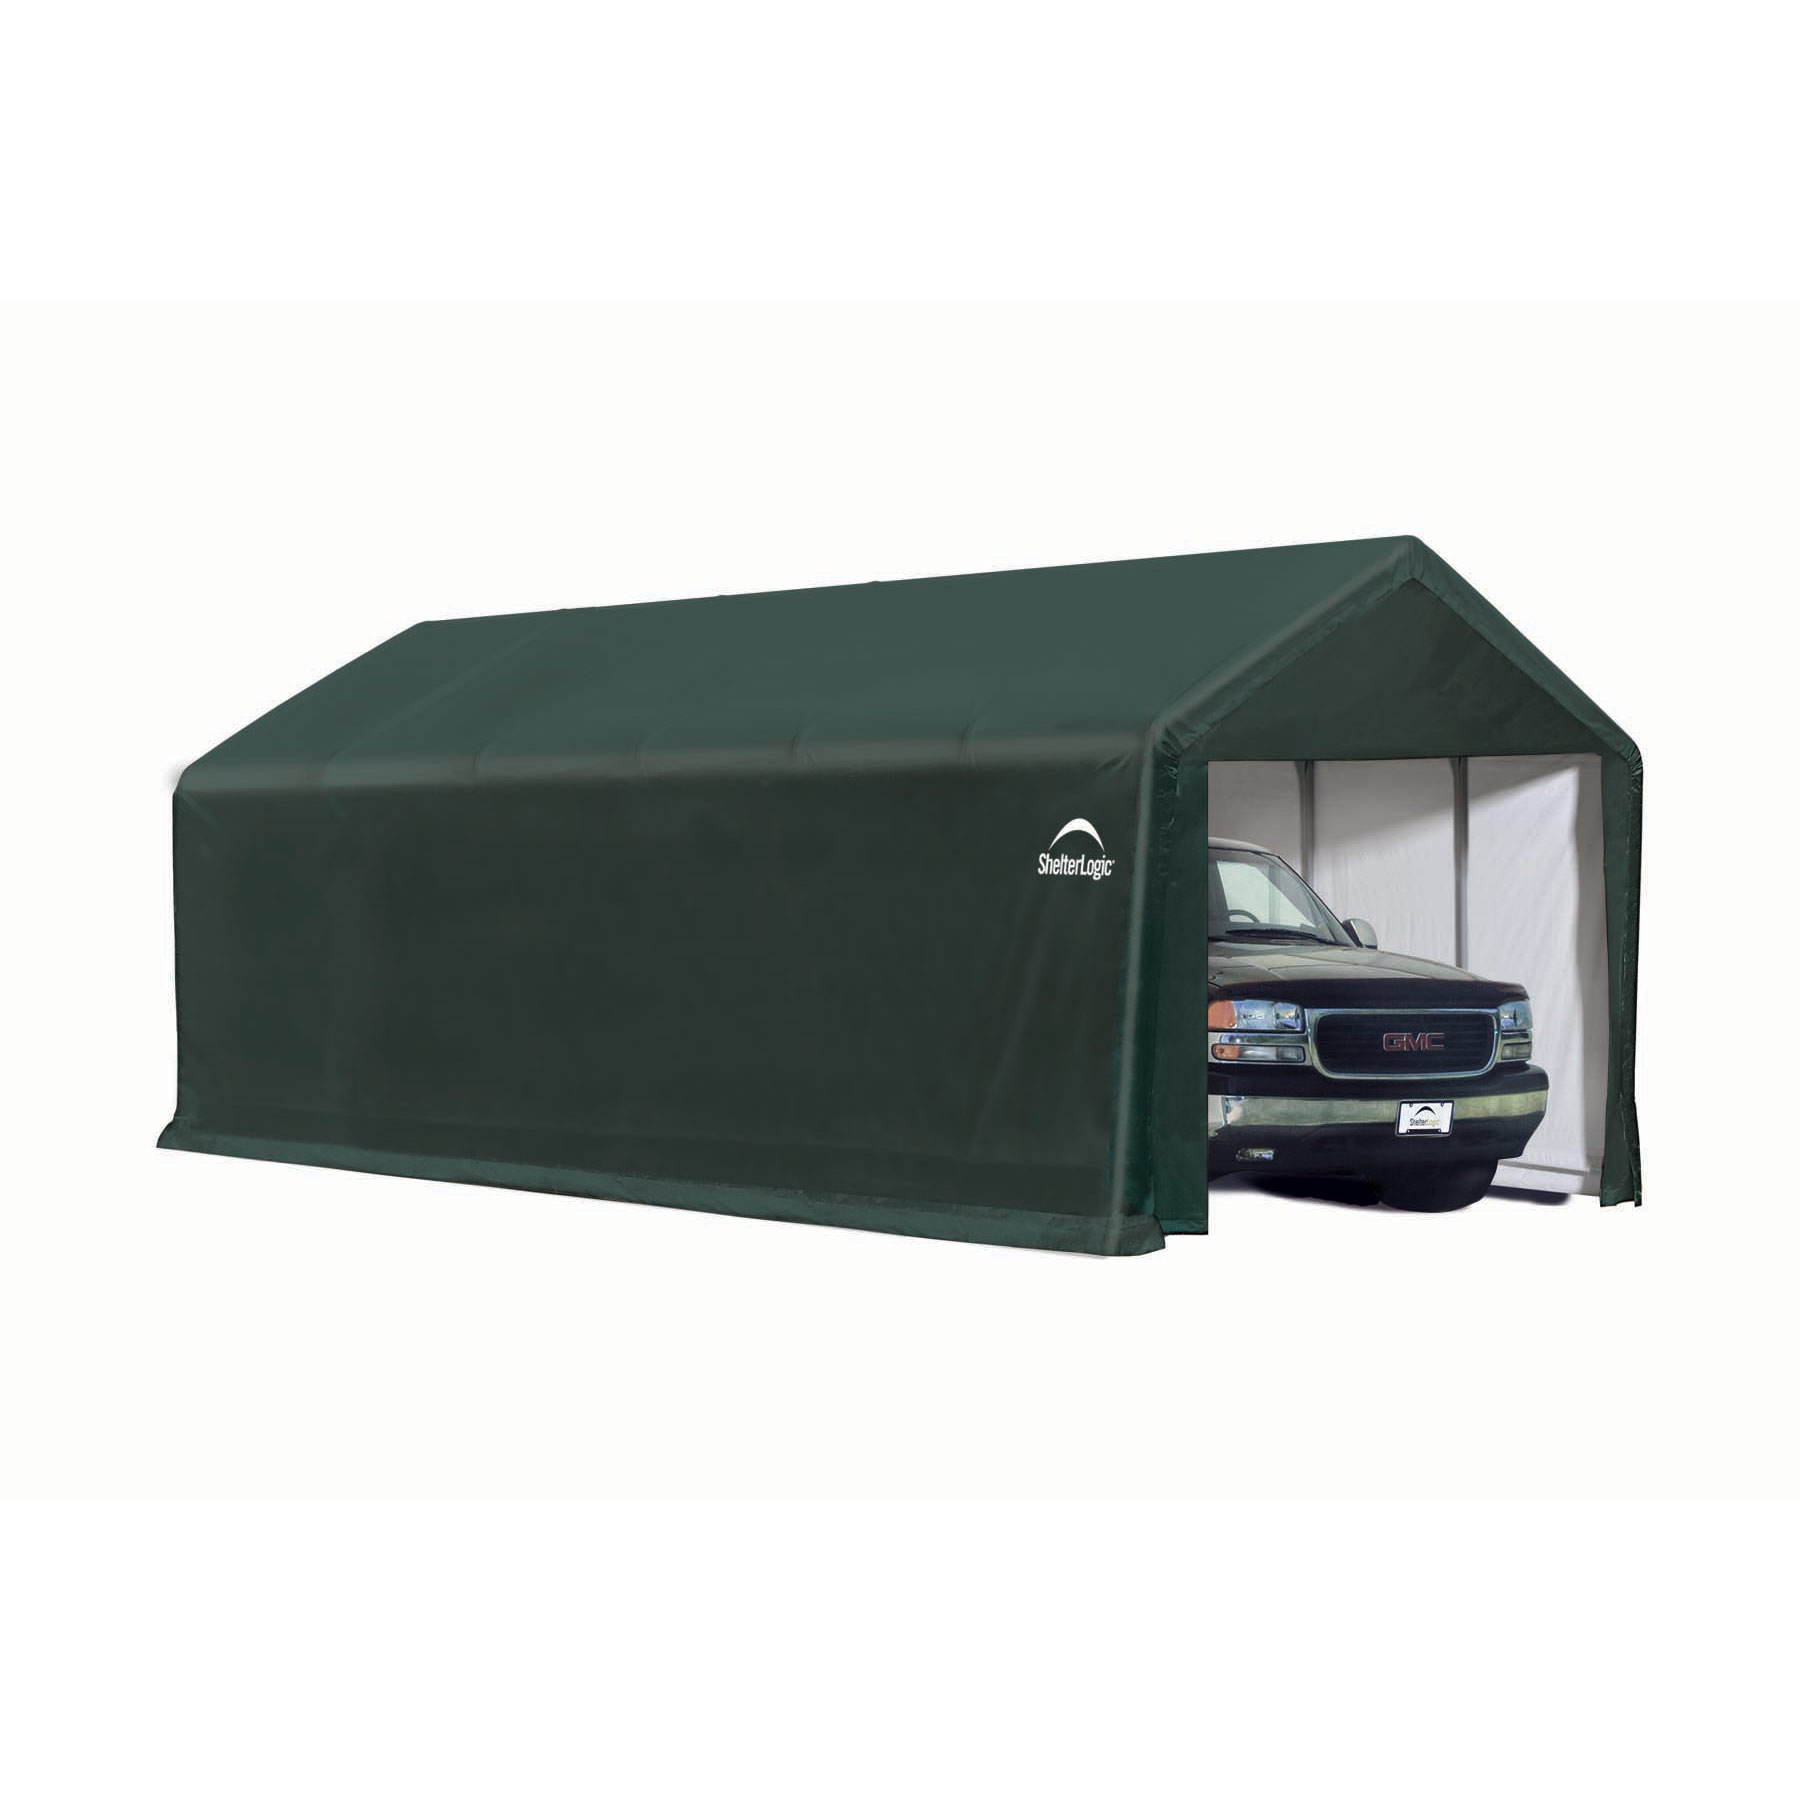 x in a garage co tent style by box auto uk wayfair brand bnd name shelter default shelterlogic peak